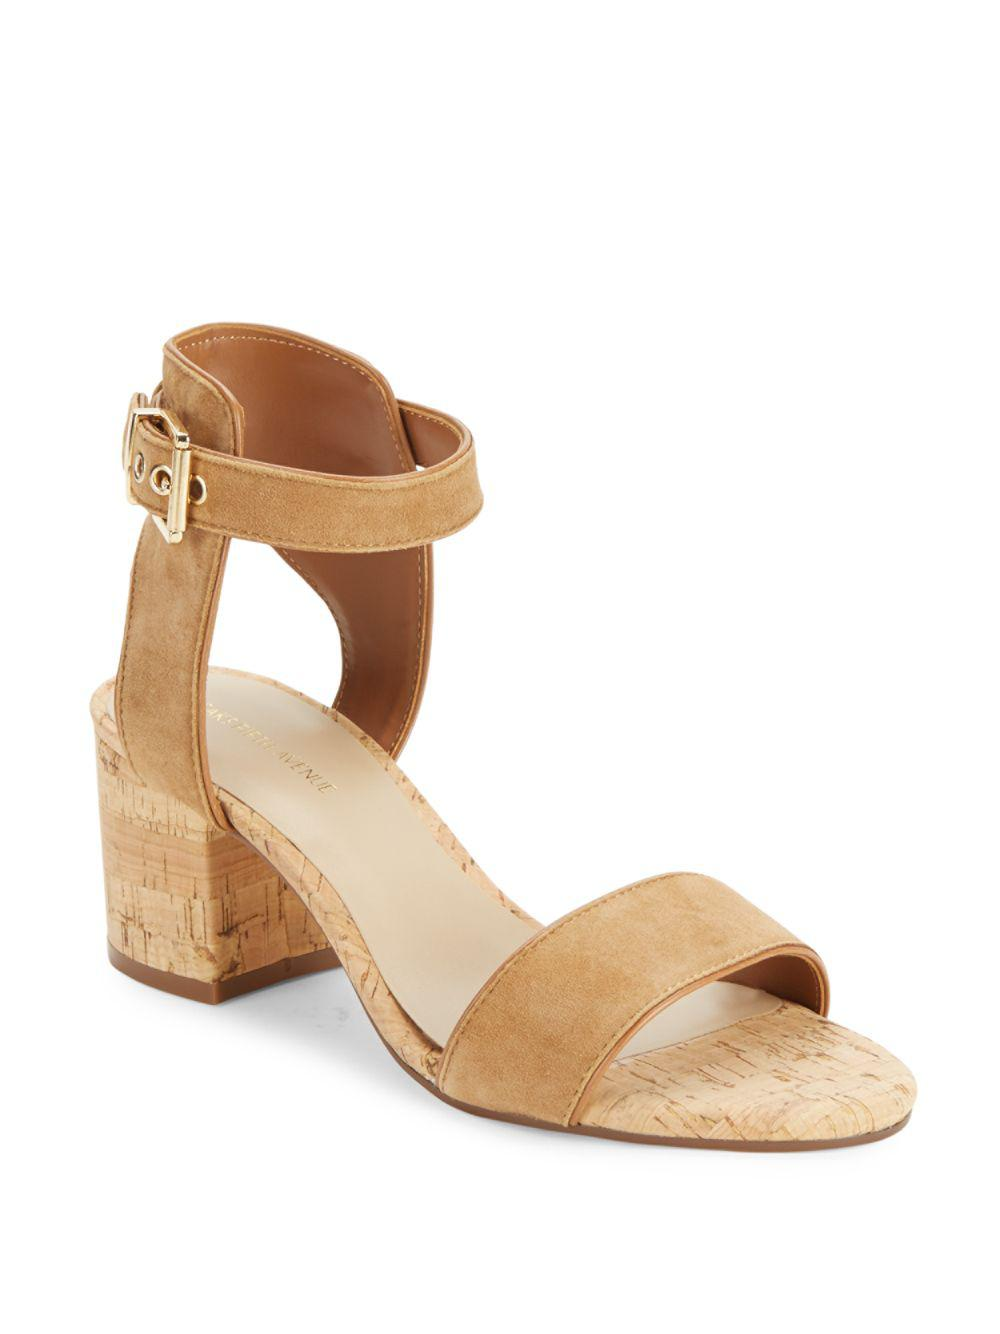 FOOTWEAR - Sandals Fifth Avenue kO4sl1T4